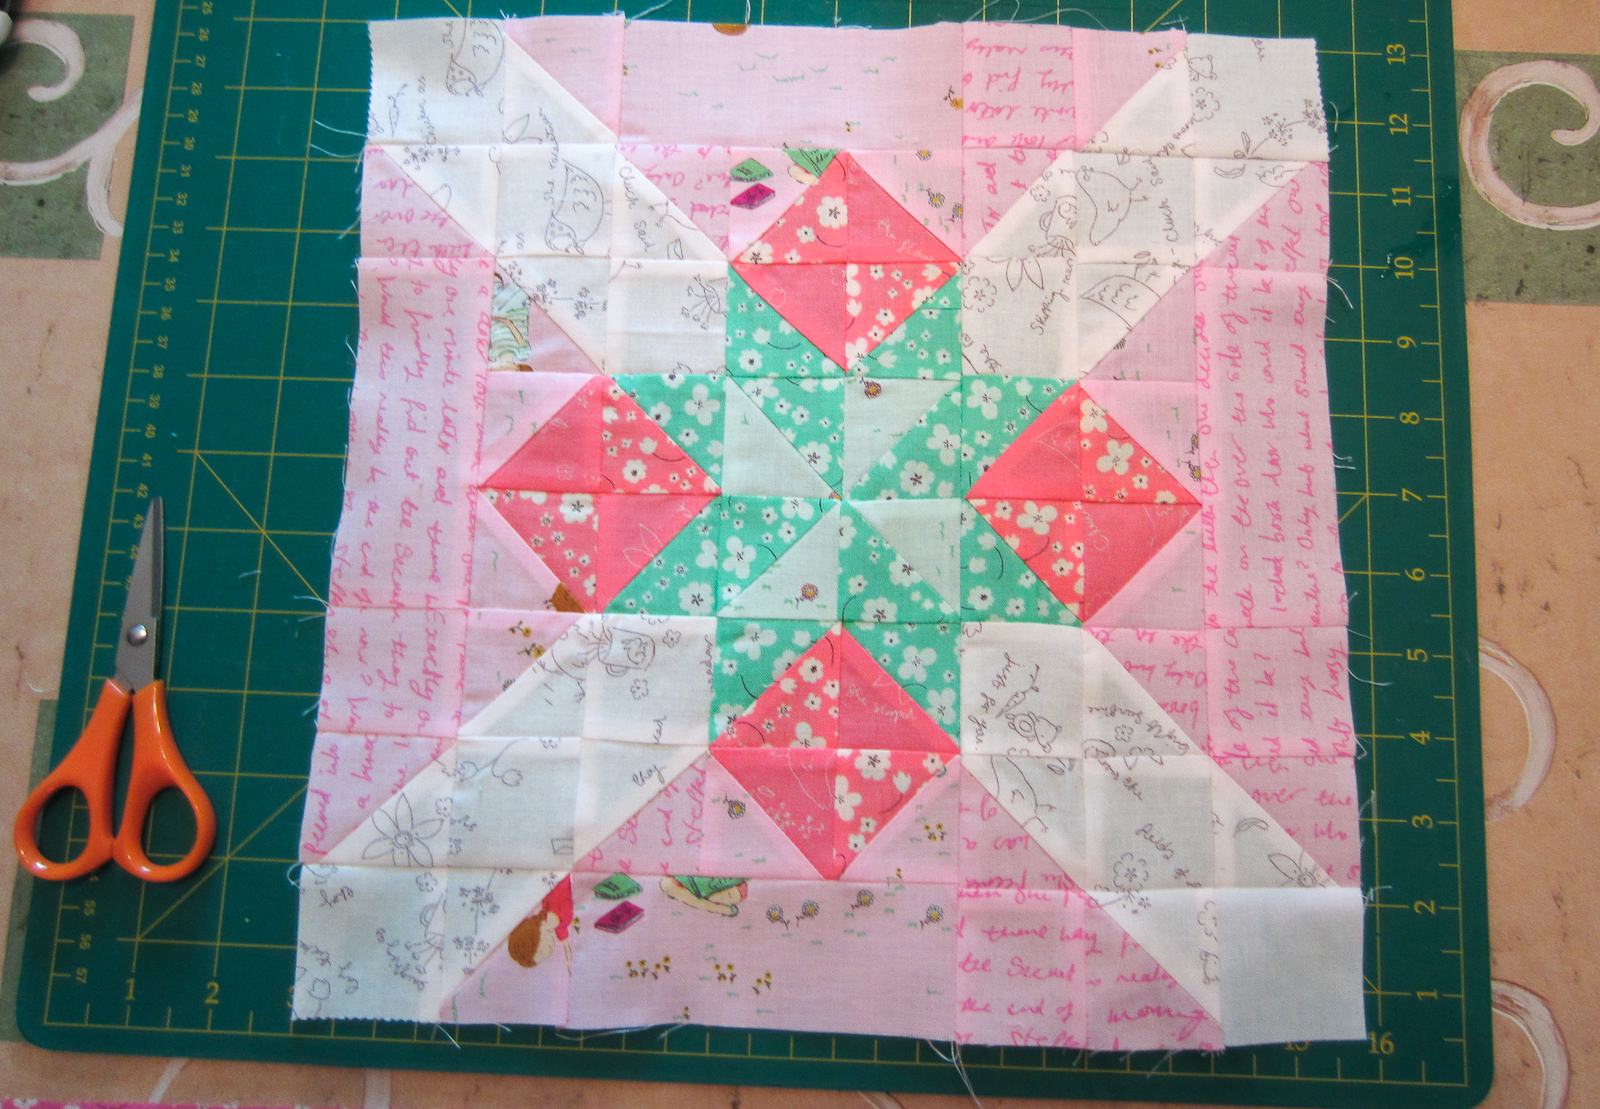 Quilt Guild Swap Ideas : Charly & Ben s Crafty Corner: Where do quilt ideas come from?